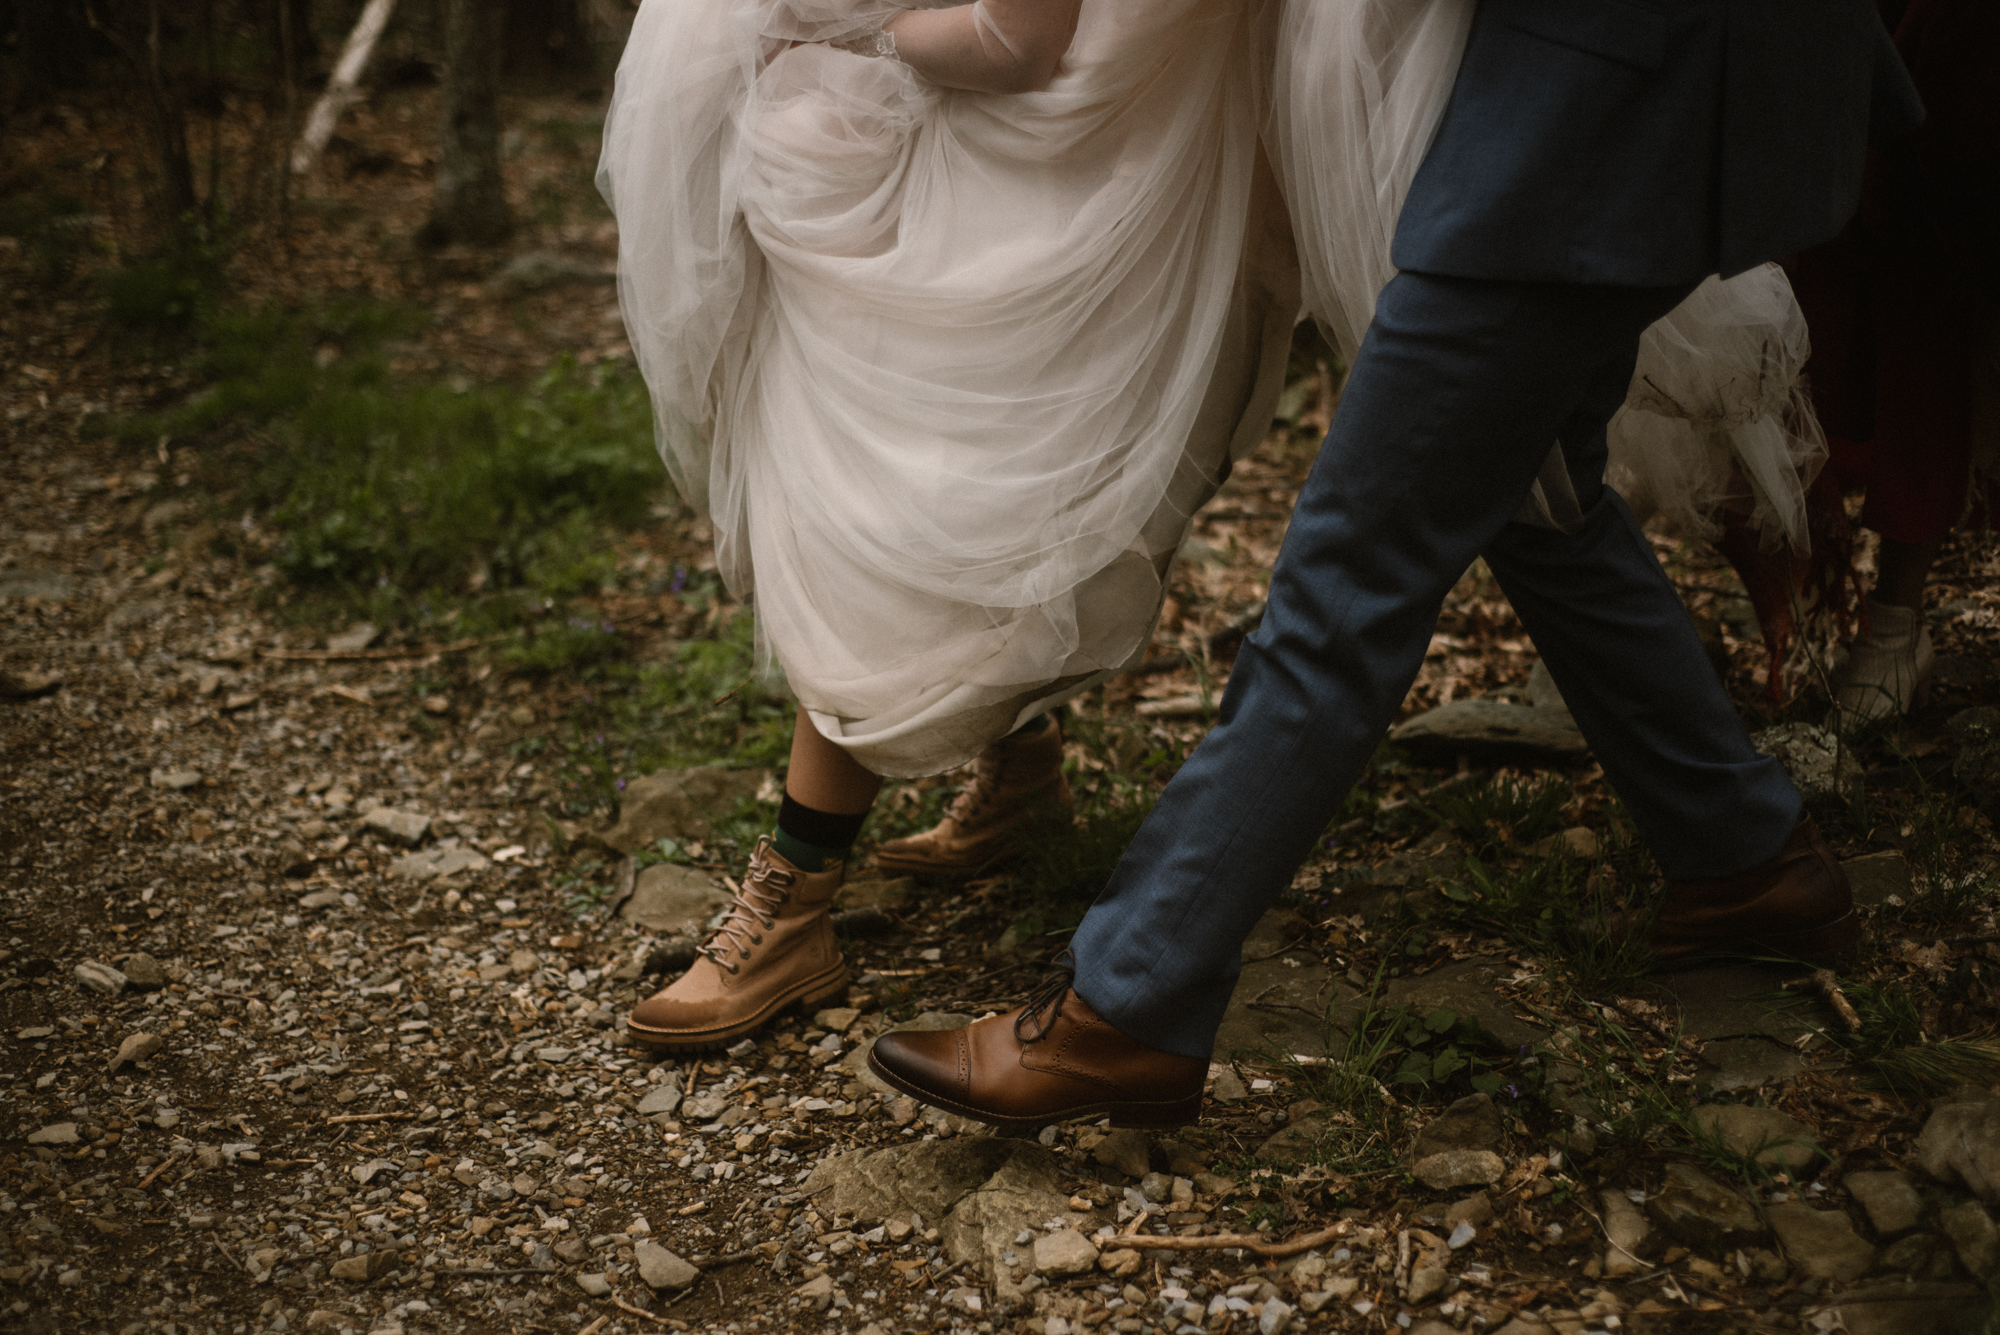 Paula and Andrew - Small Adventurous Wedding in Shenandoah National Park - Blue Ridge Mountain Wedding - White Sails Creative - Mountain Elopement_46.jpg